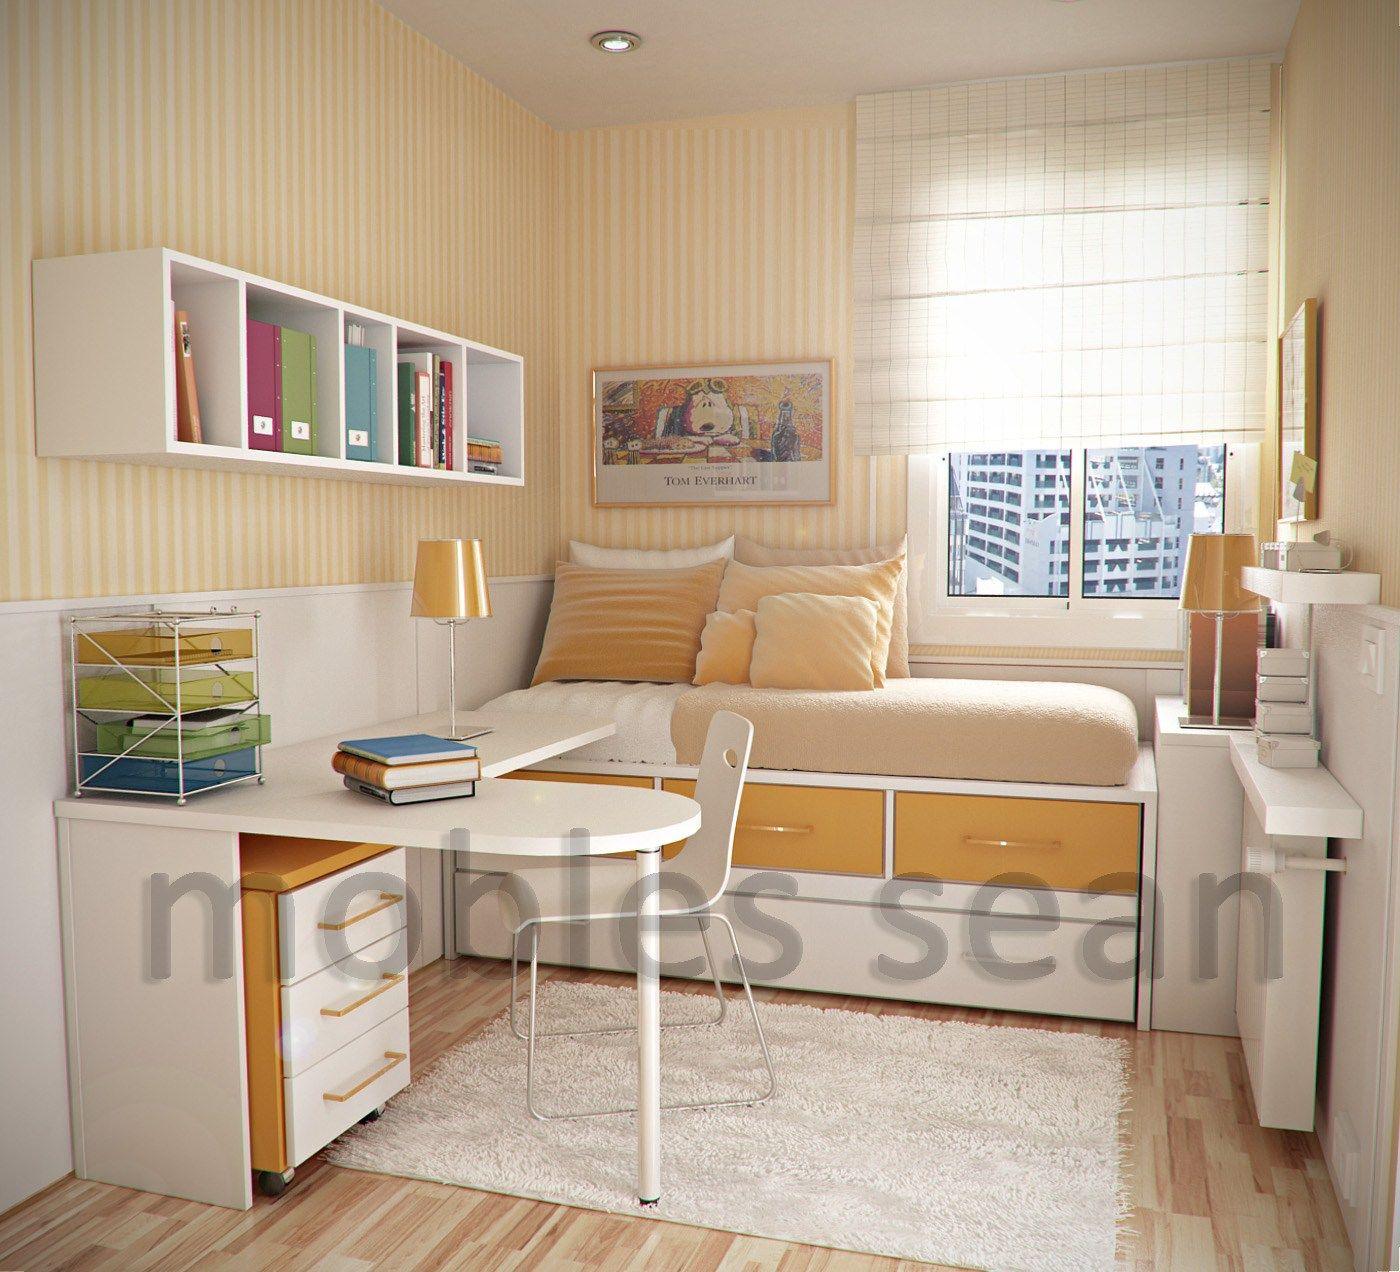 Interior Design For Bedroom Small Space Impressive Space Saving Designs Small Kids Rooms Tips Small Bedroom Painting Review